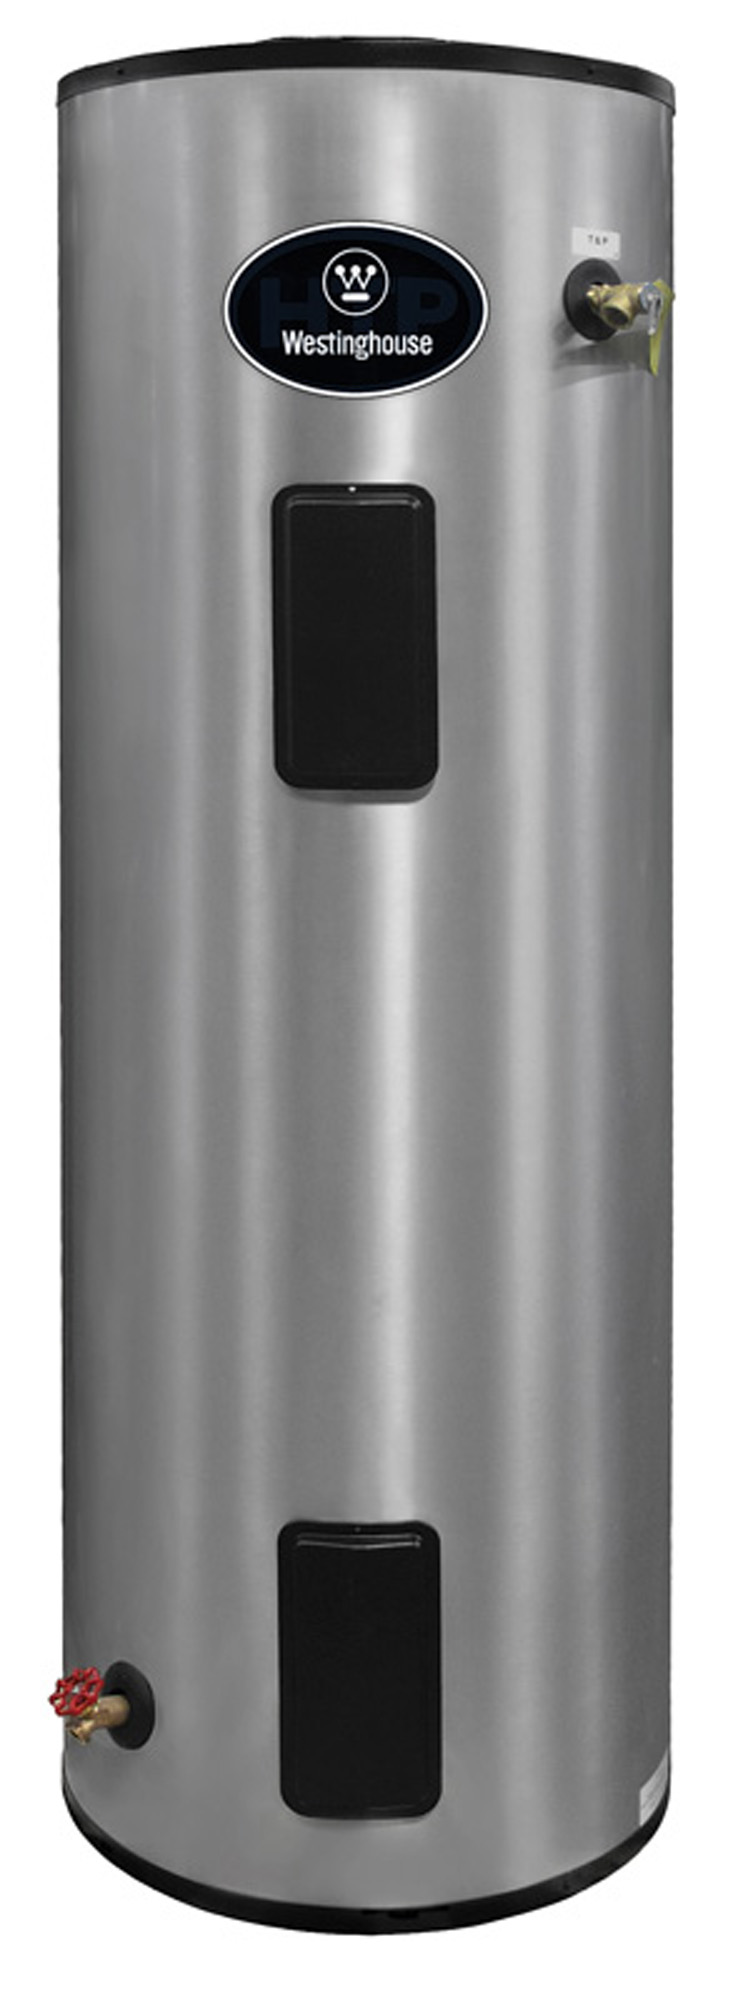 The Westinghouse stainless steel electric hot water heater has an energy factor (EF) of .95.